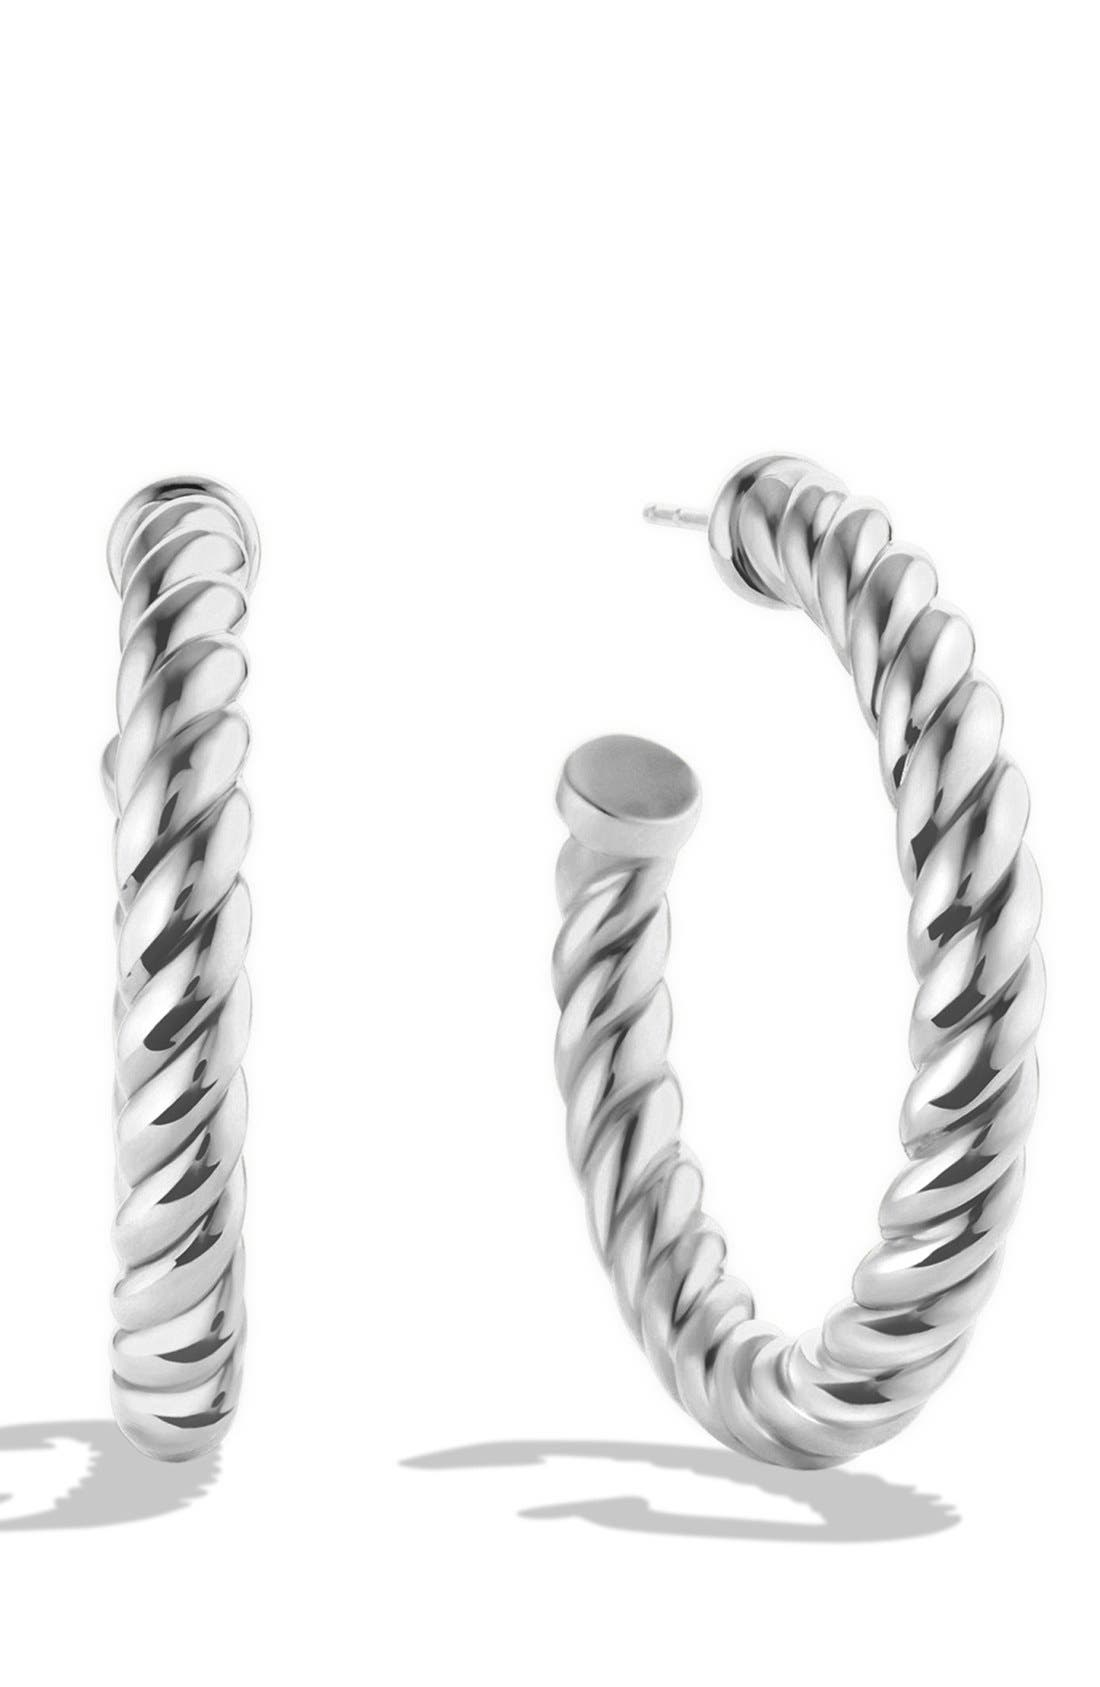 David Yurman 'Cable Classics' Hoop Earrings